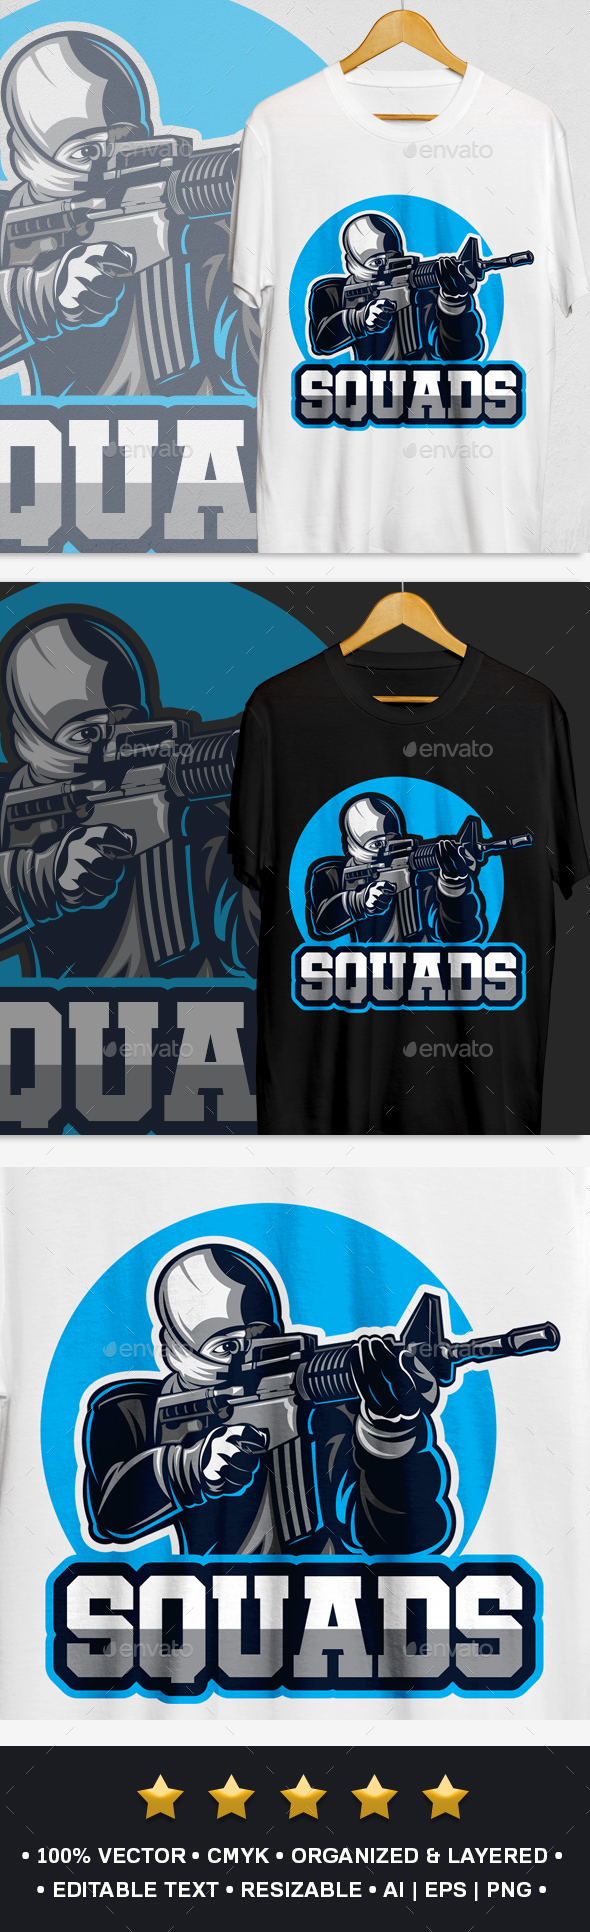 Squads T-Shirt Design - Sports & Teams T-Shirts